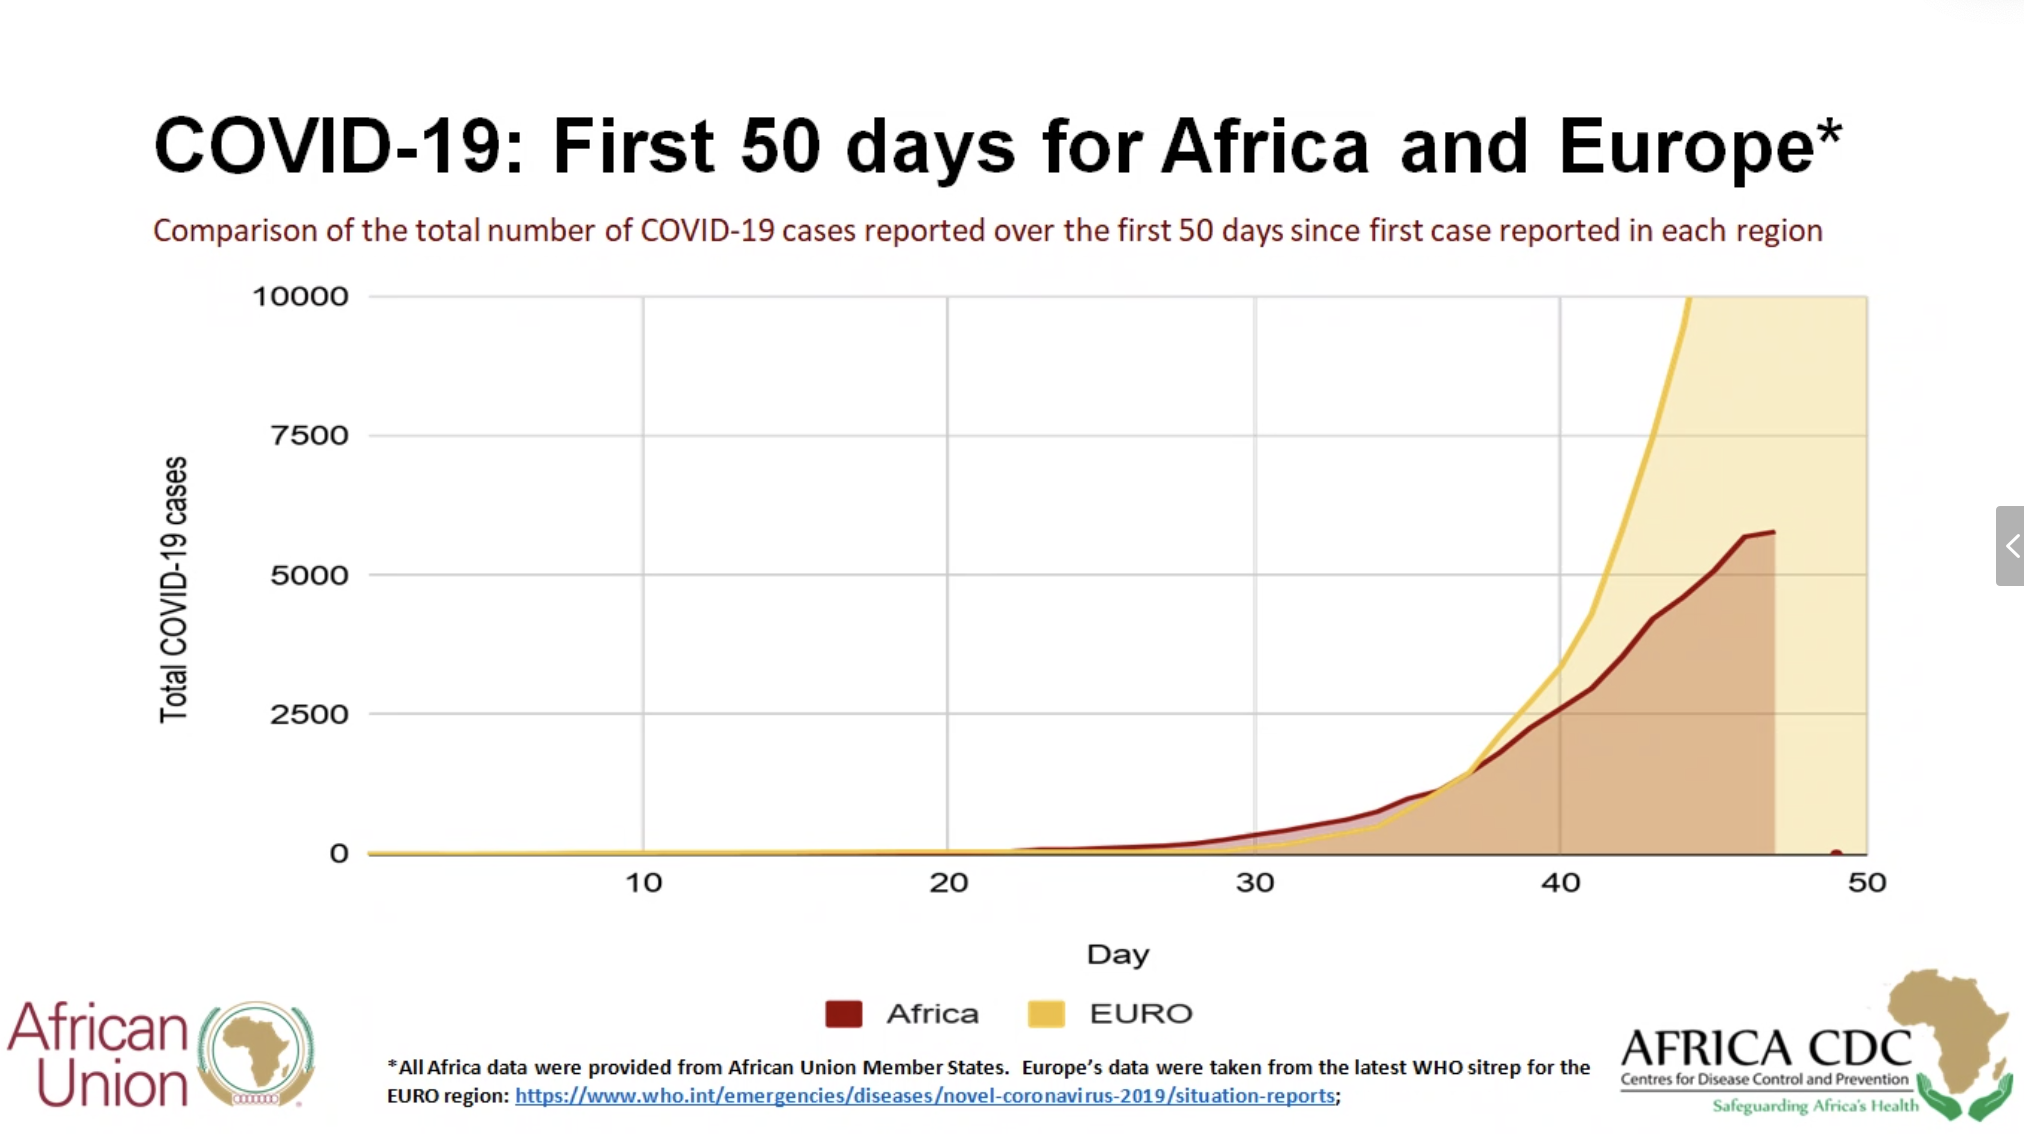 Comparing the outbreaks in Africa and Europe, the number of new cases within 50 days after the first confirmed person changed.